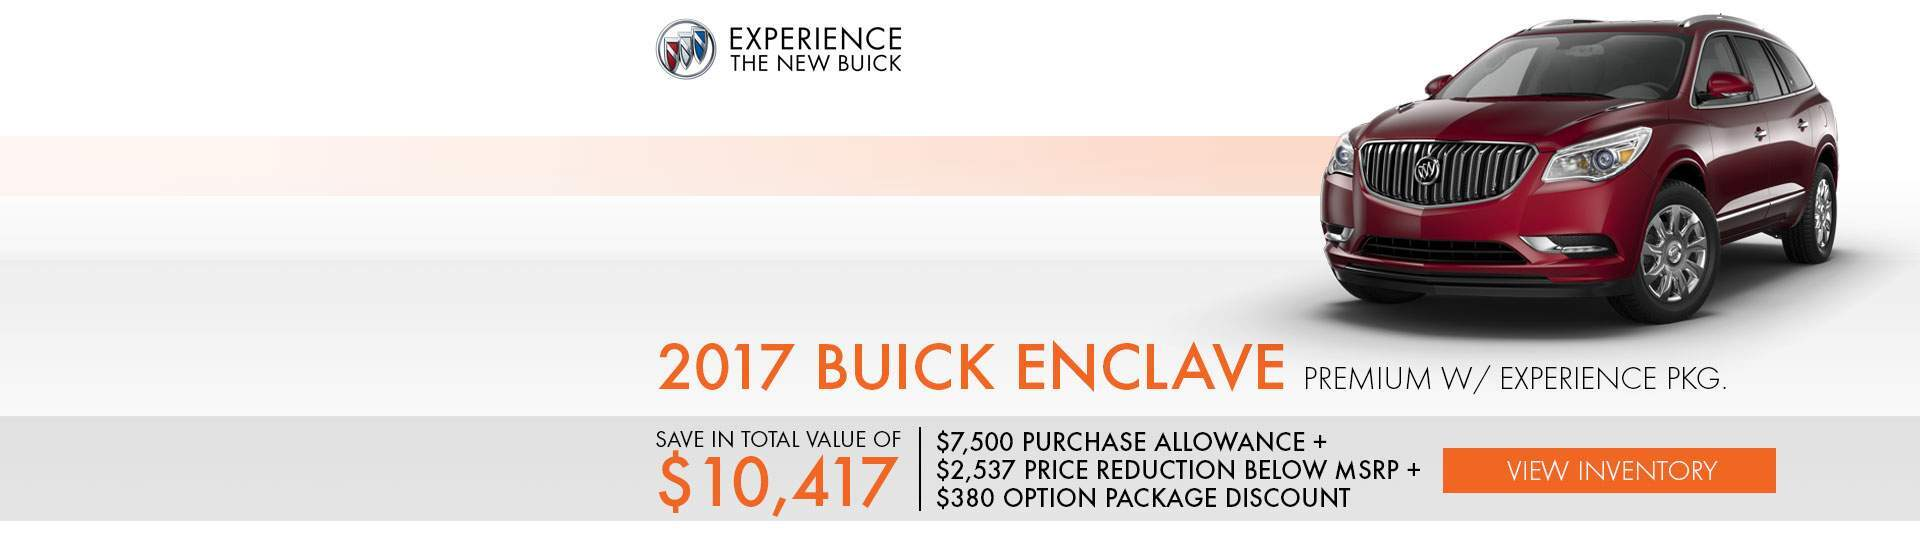 October 2017 Buick Enclave Premium Slide